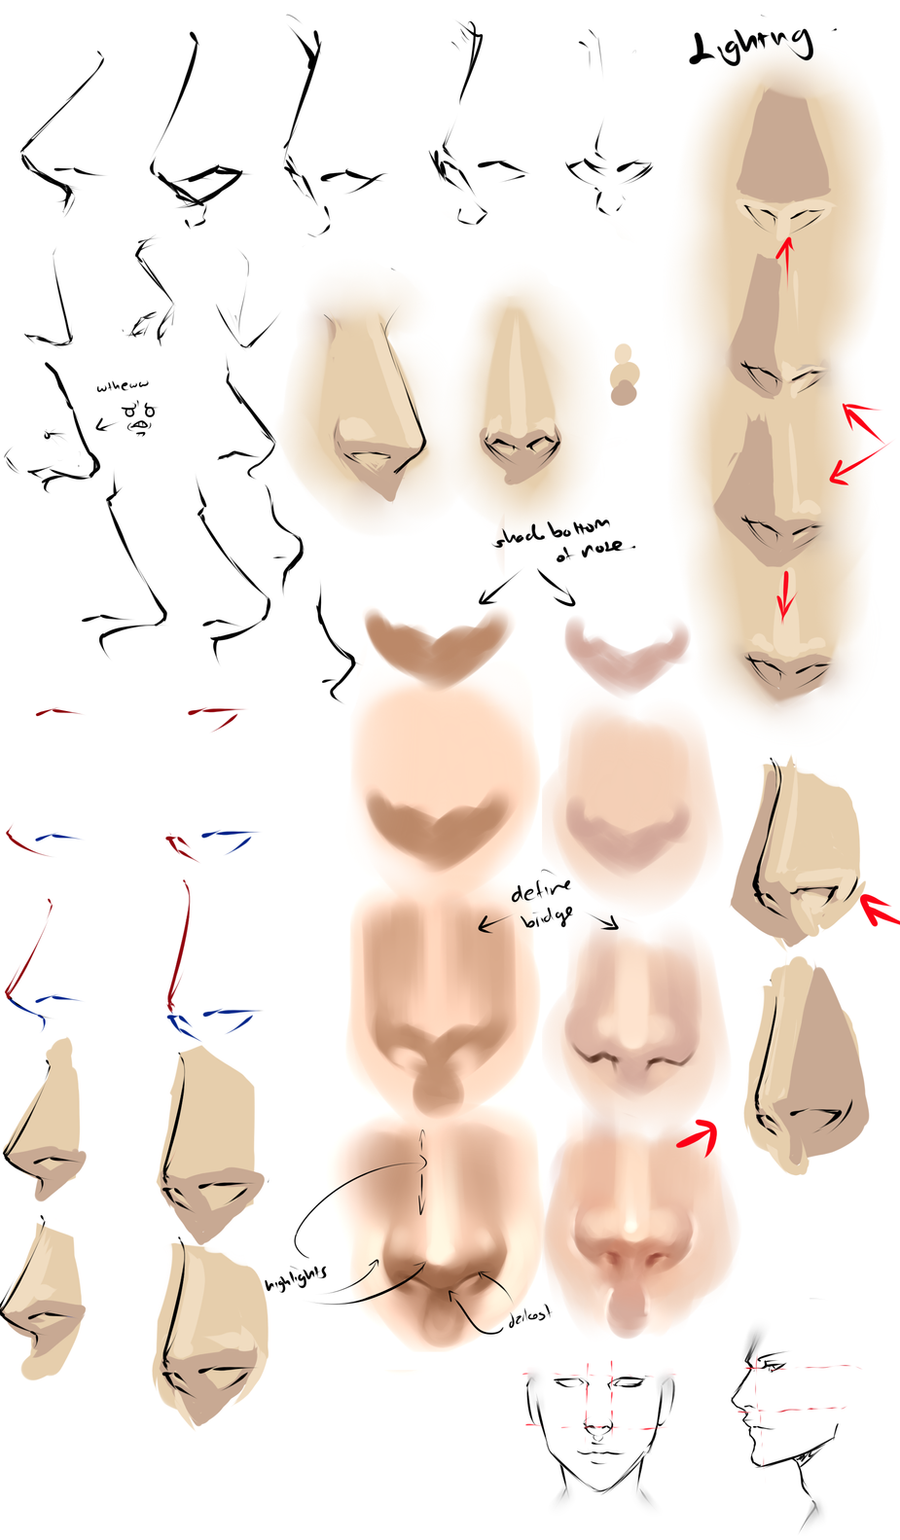 Gesture drawing, Drawings and Anatomy drawing on Pinterest